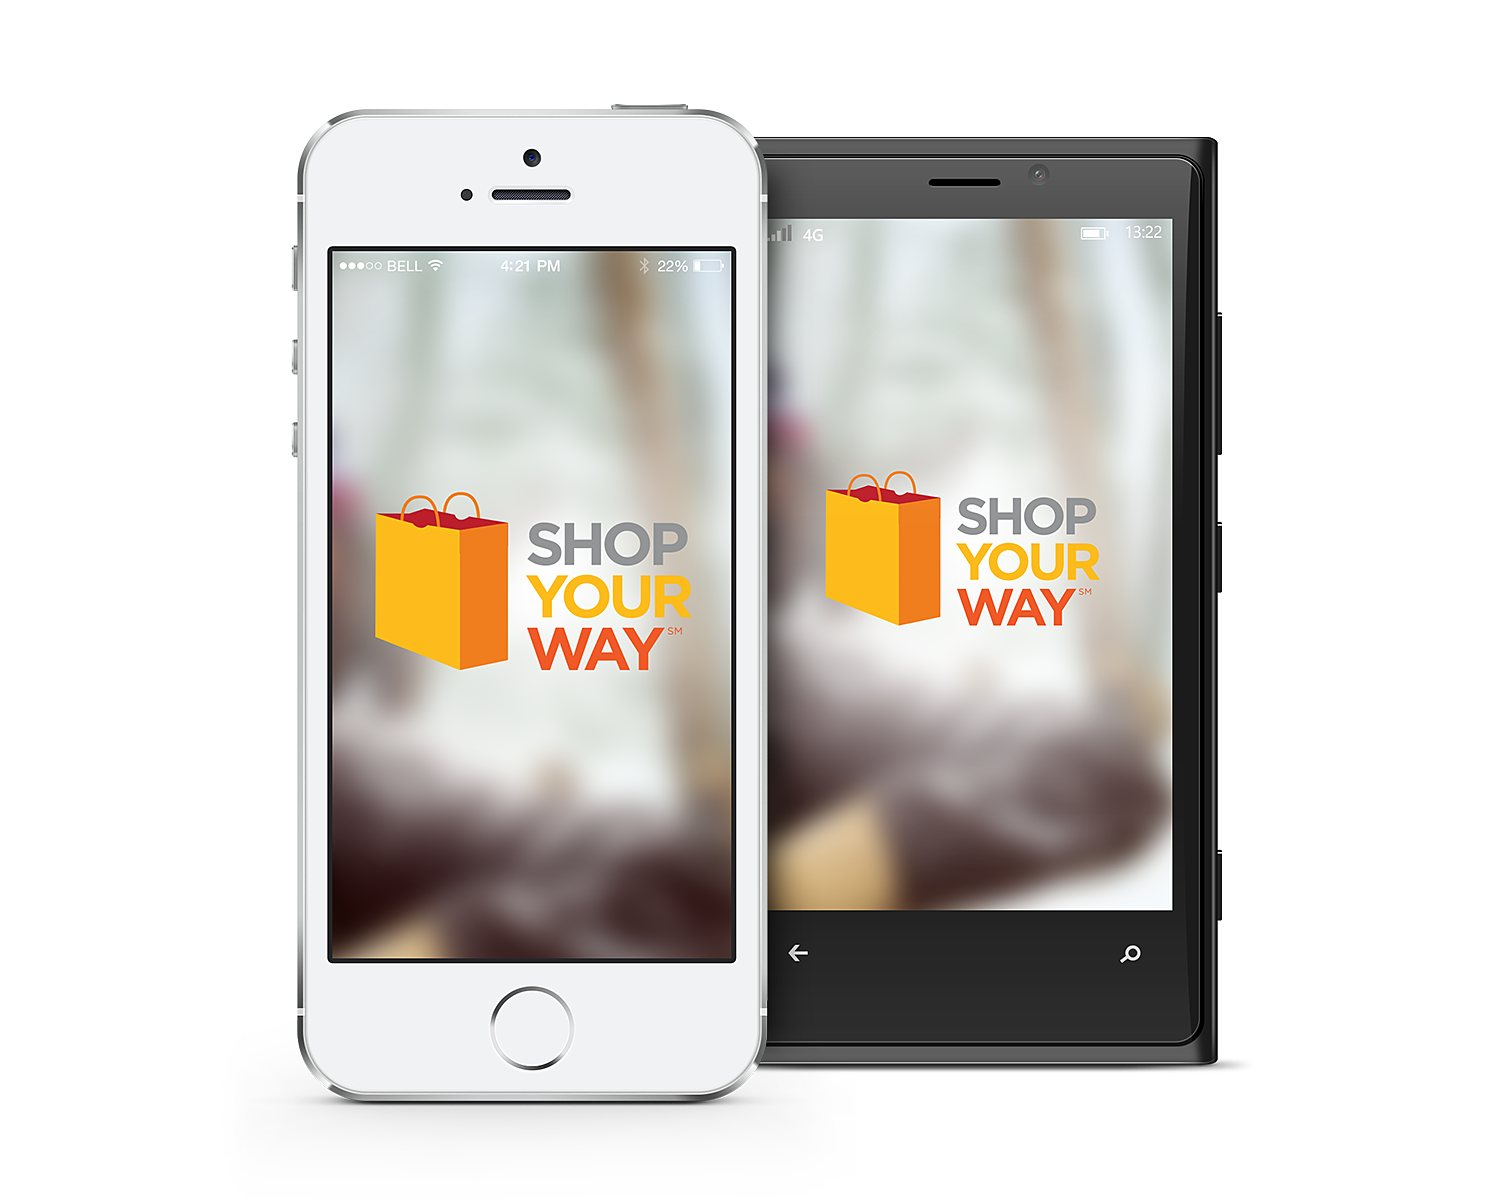 Shop Your Way app